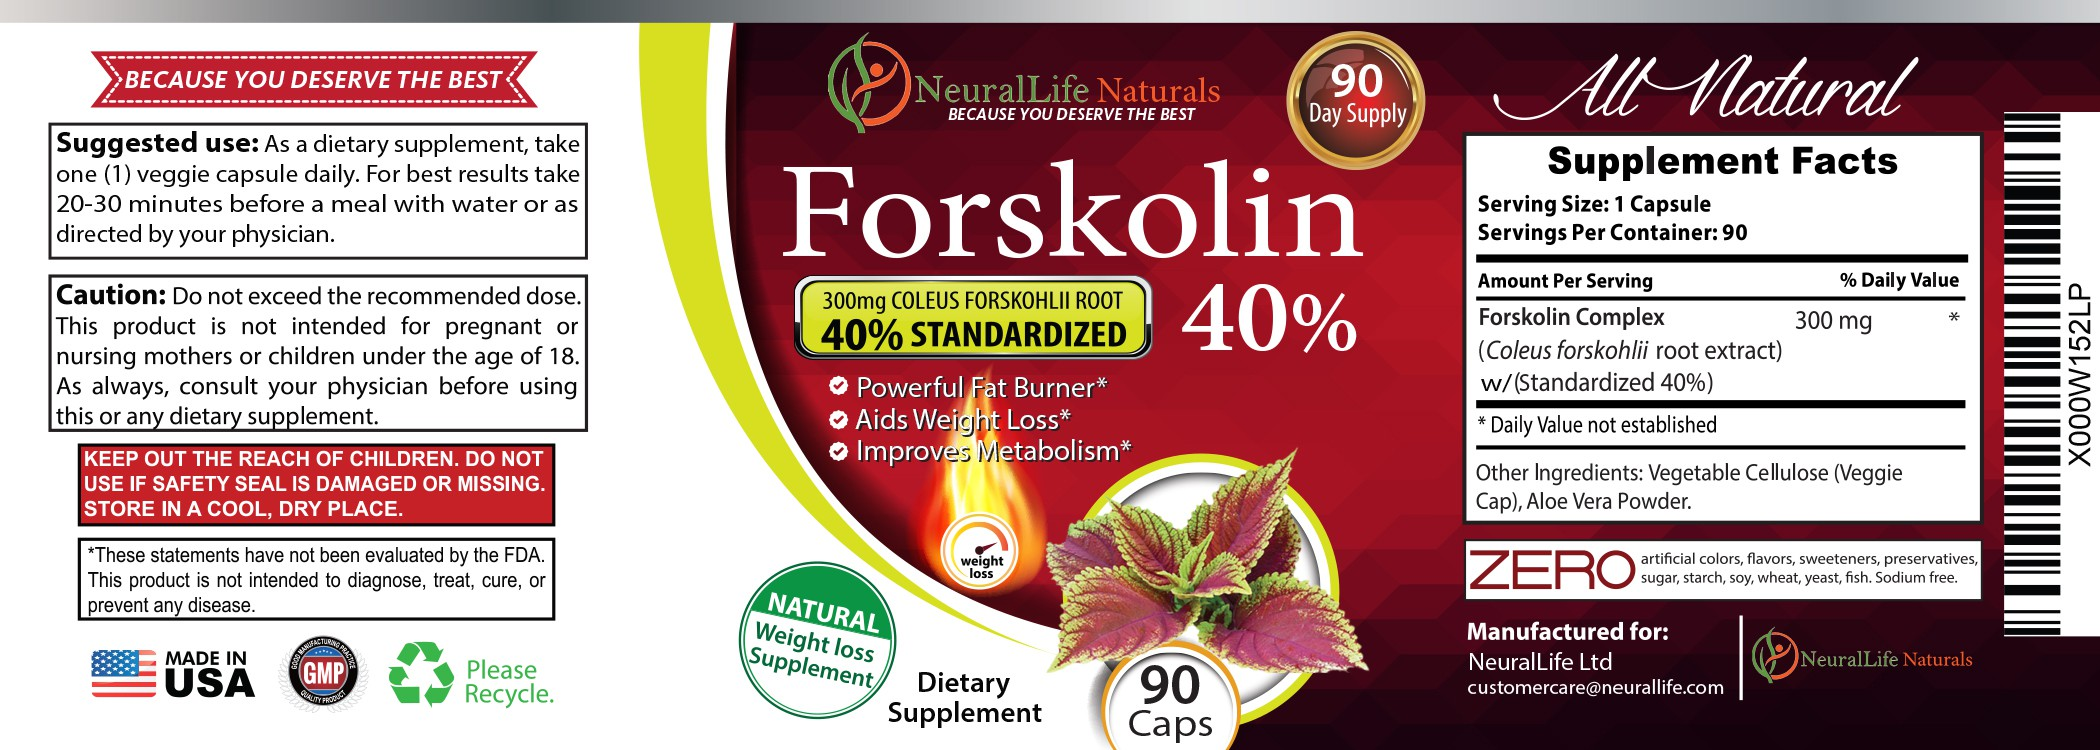 Create an eye-catching product label for a weight loss supplement